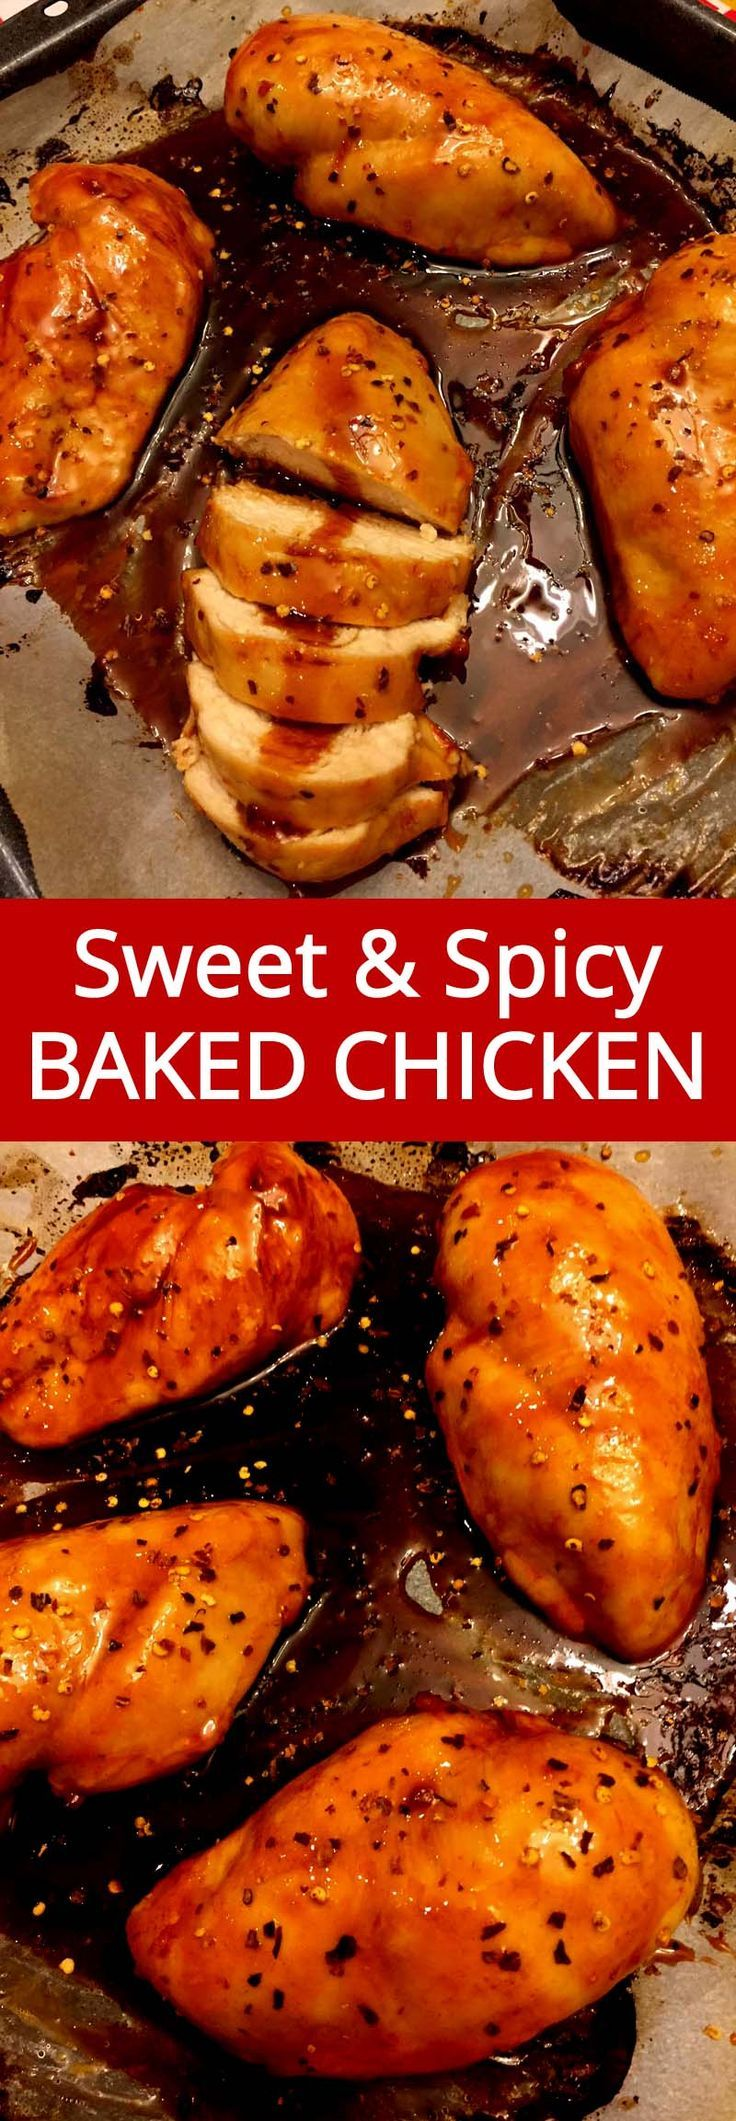 Pin On Chicken And Poultry Recipes